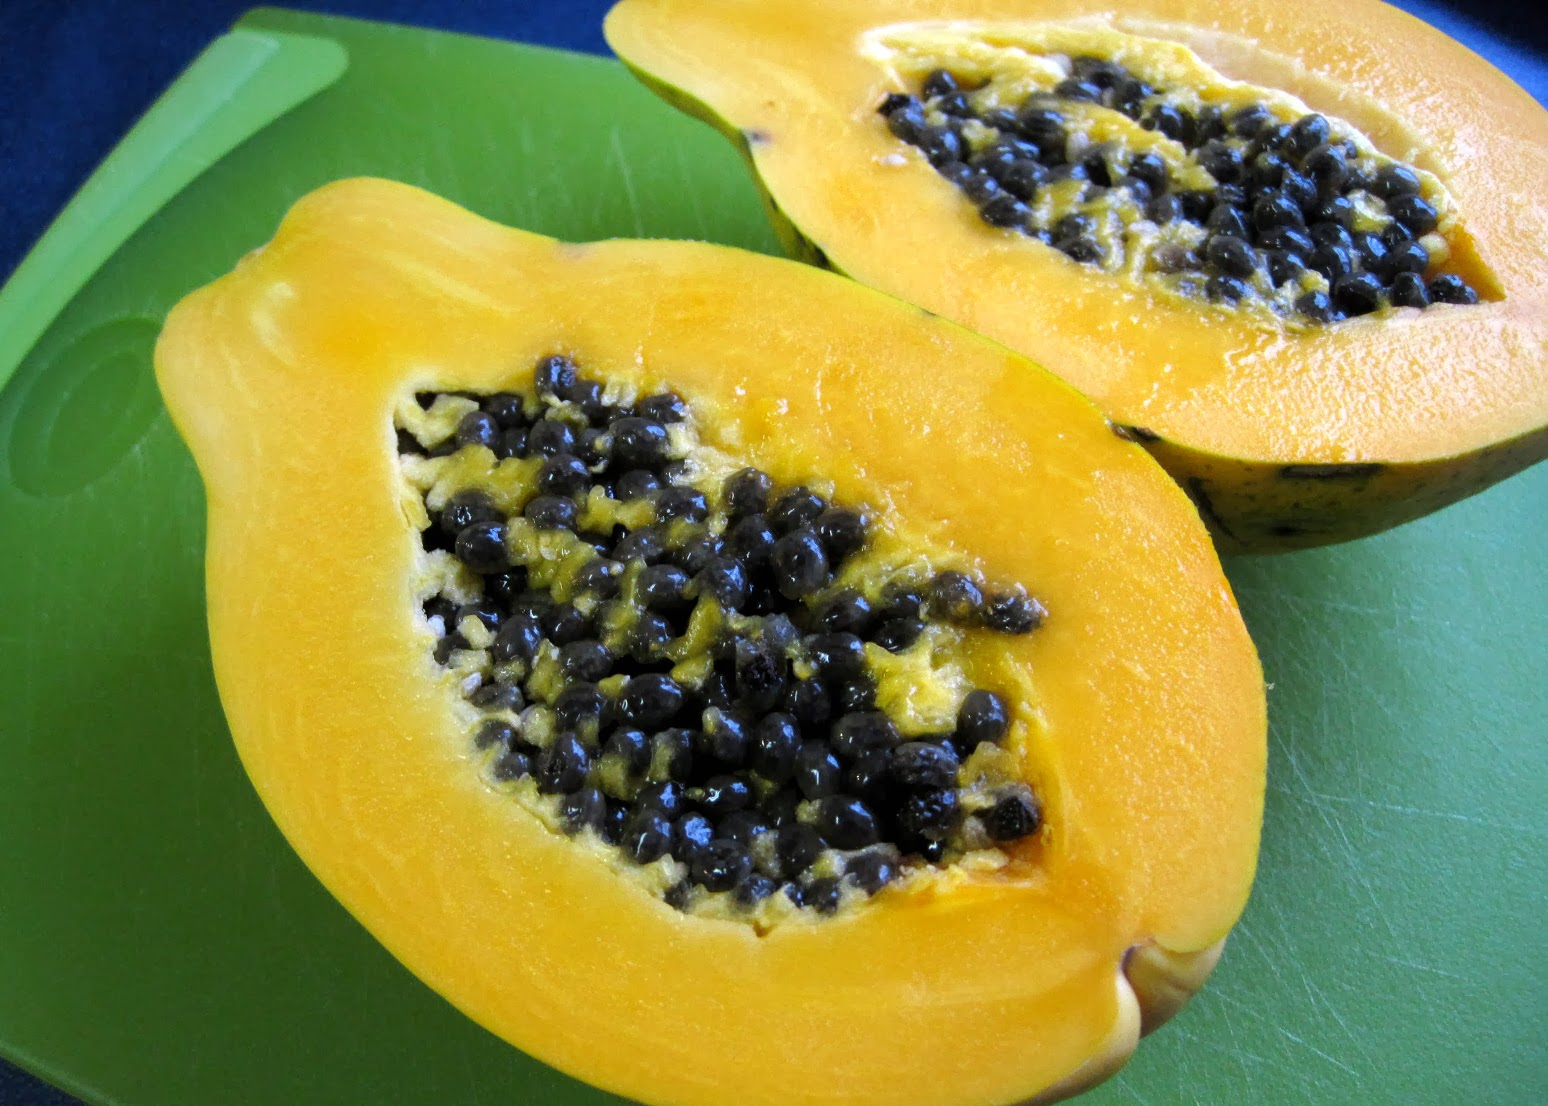 papaya seeds are edible